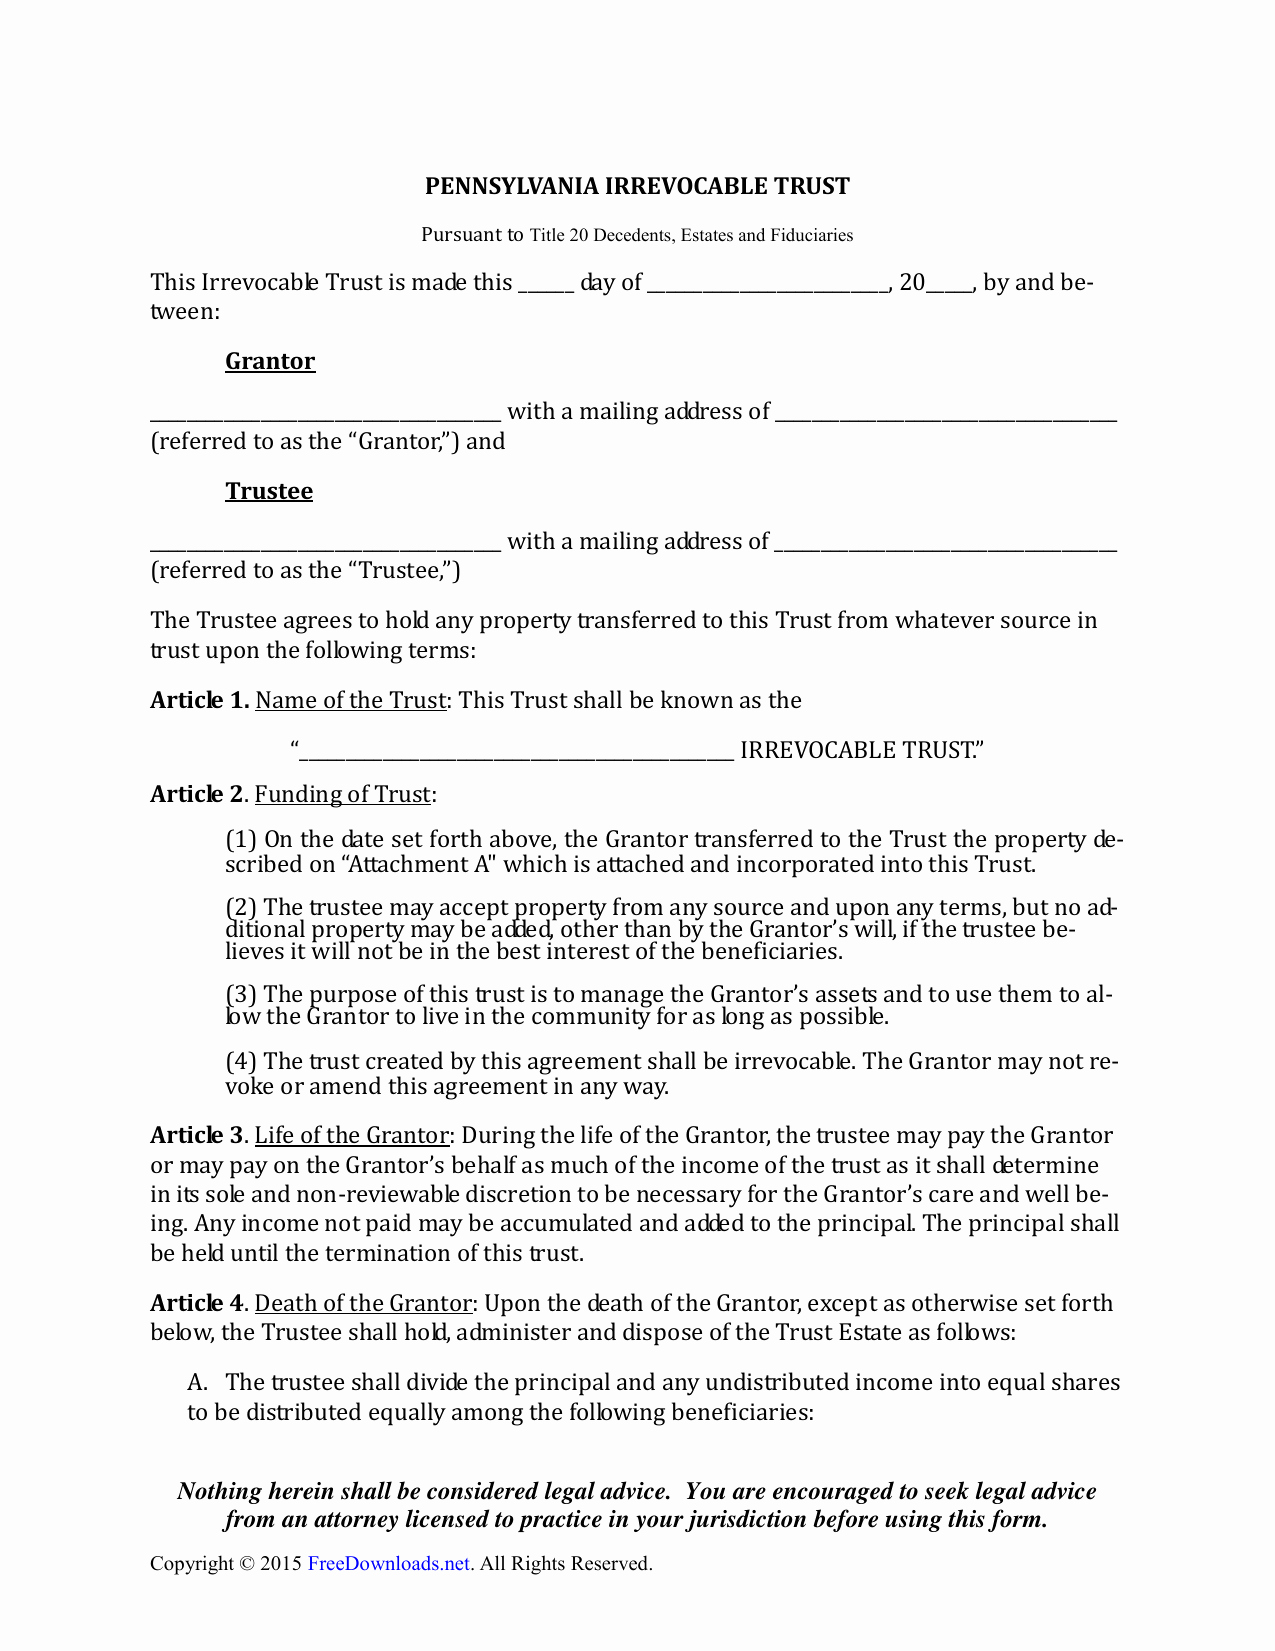 Irrevocable Power Of attorney forms Beautiful Download Pennsylvania Irrevocable Living Trust form Pdf Rtf Word